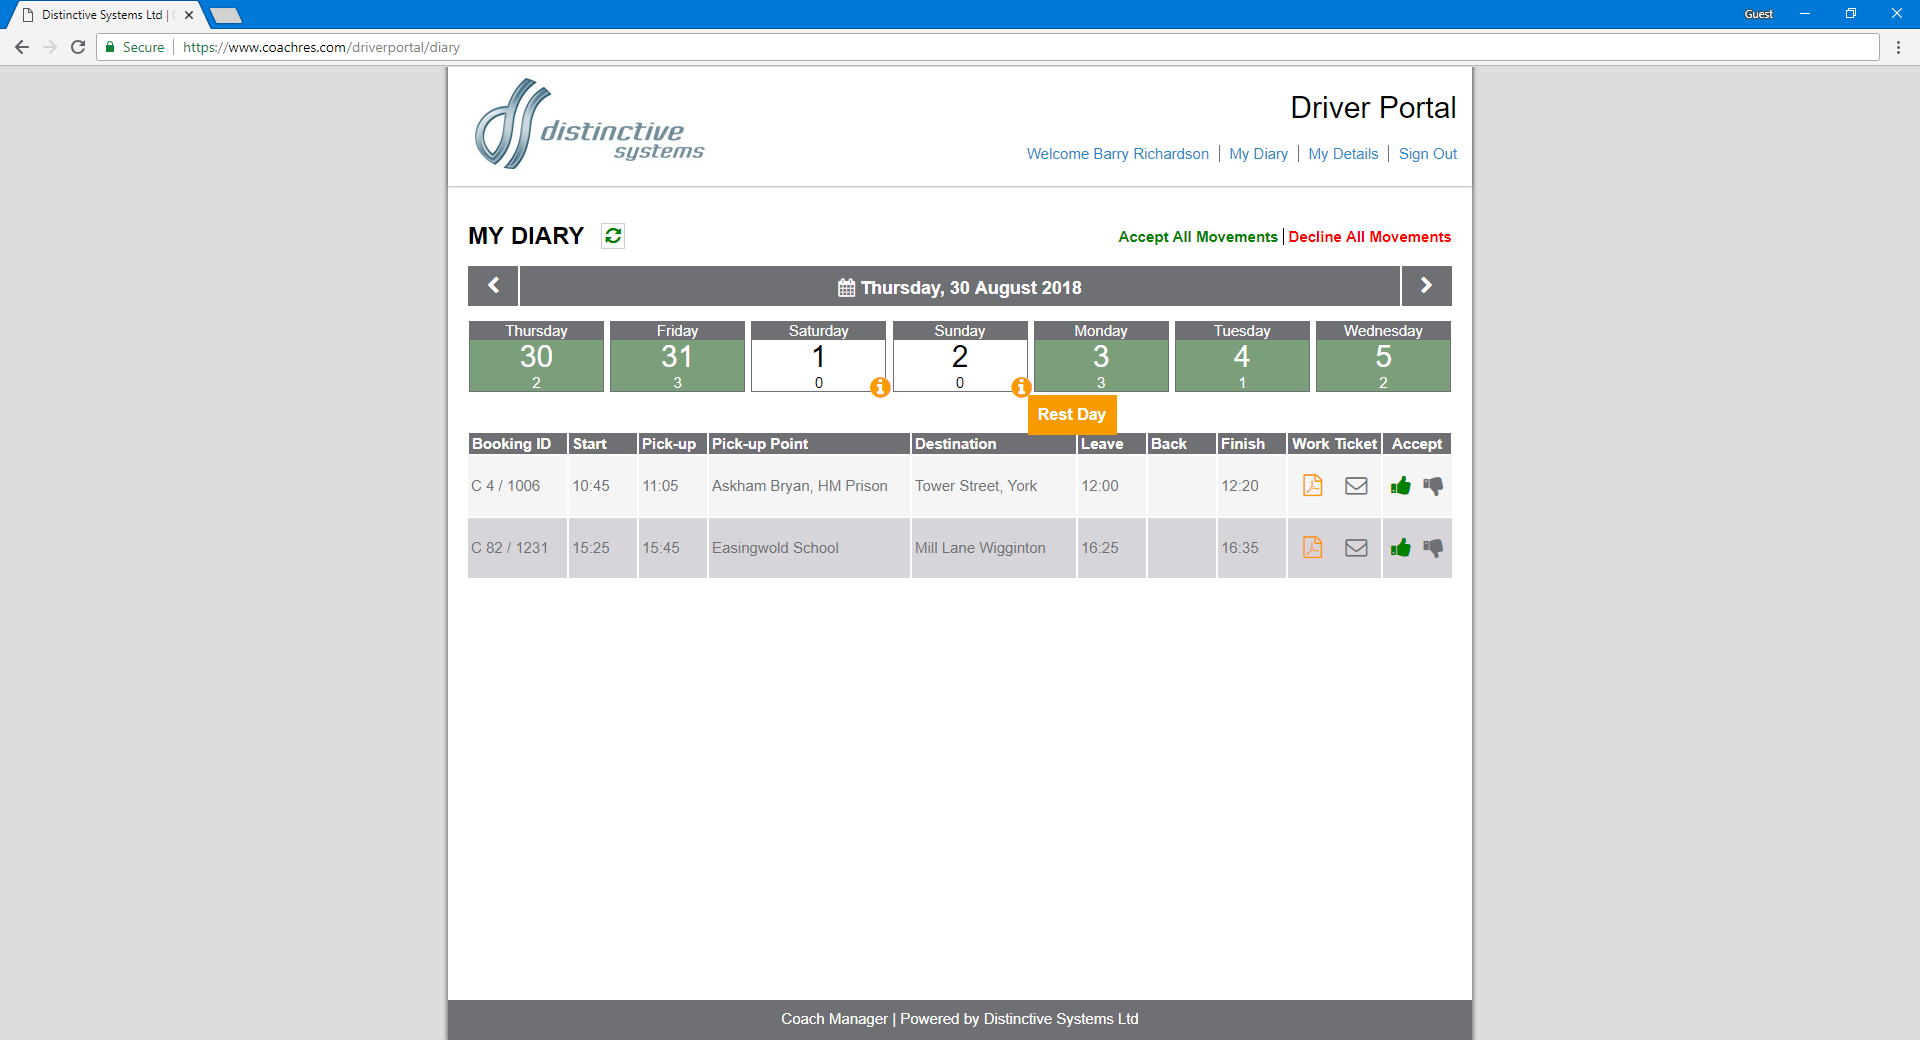 Driver Online Portal for Distinctive Systems Coach Manager Released